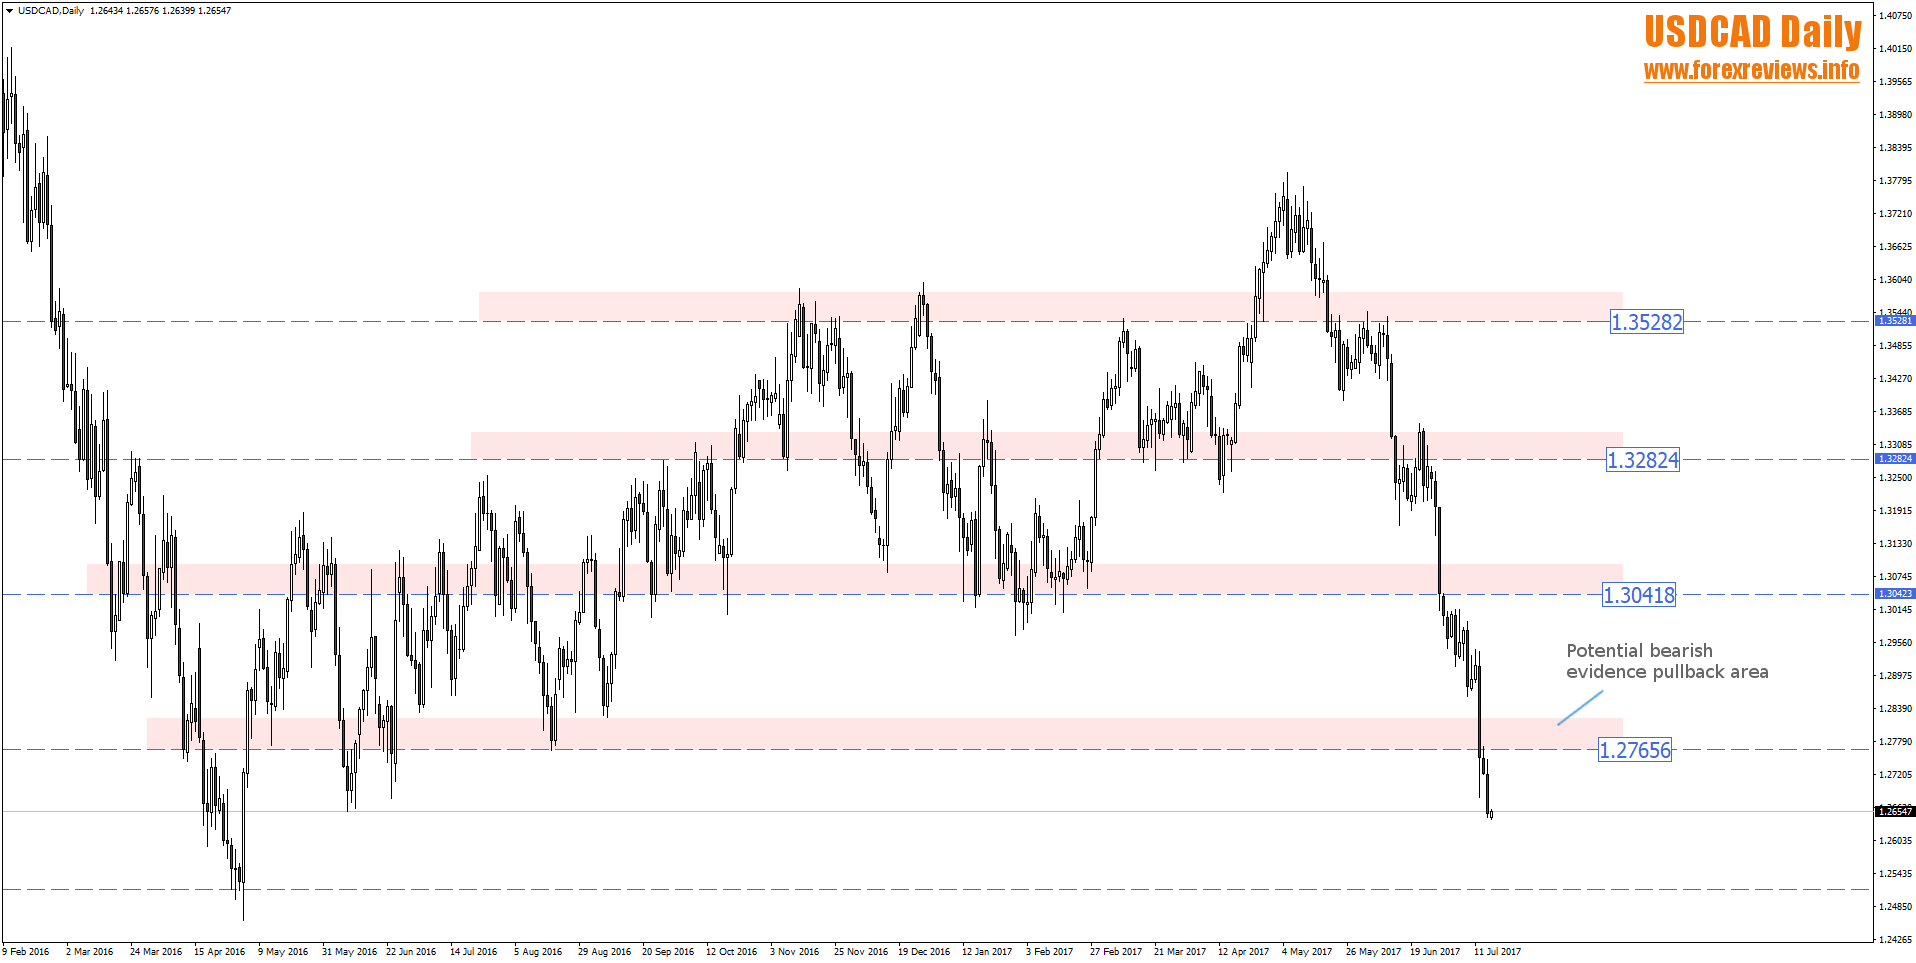 USDCAD pullback area in downtrend